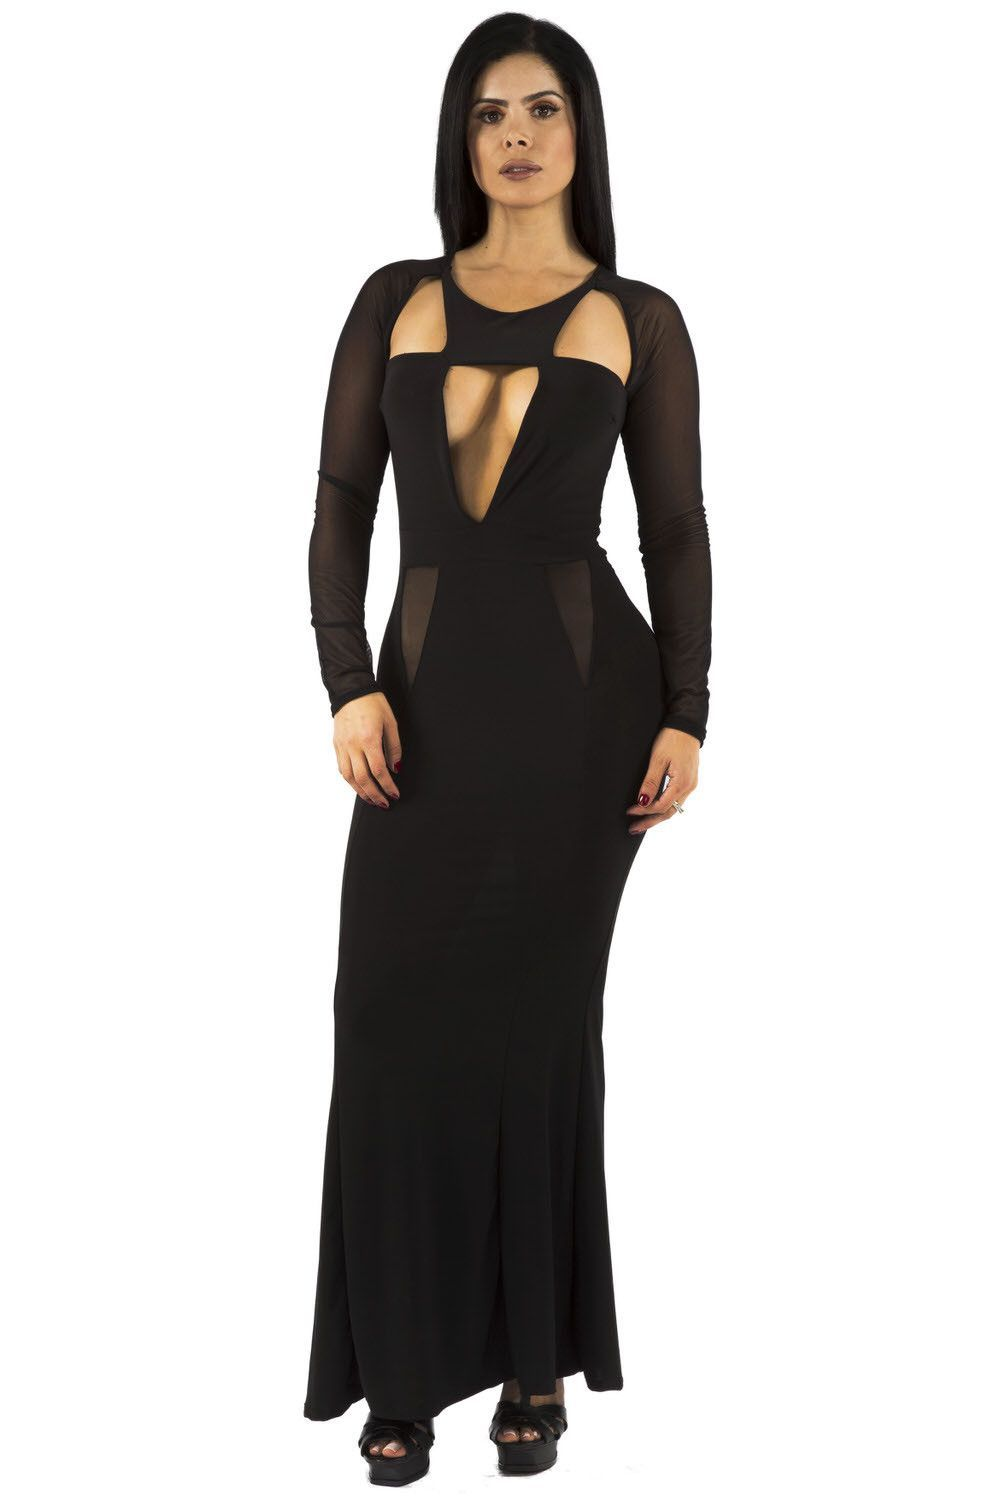 Black longsleeve mermaid style maxi dress with cut out detailing